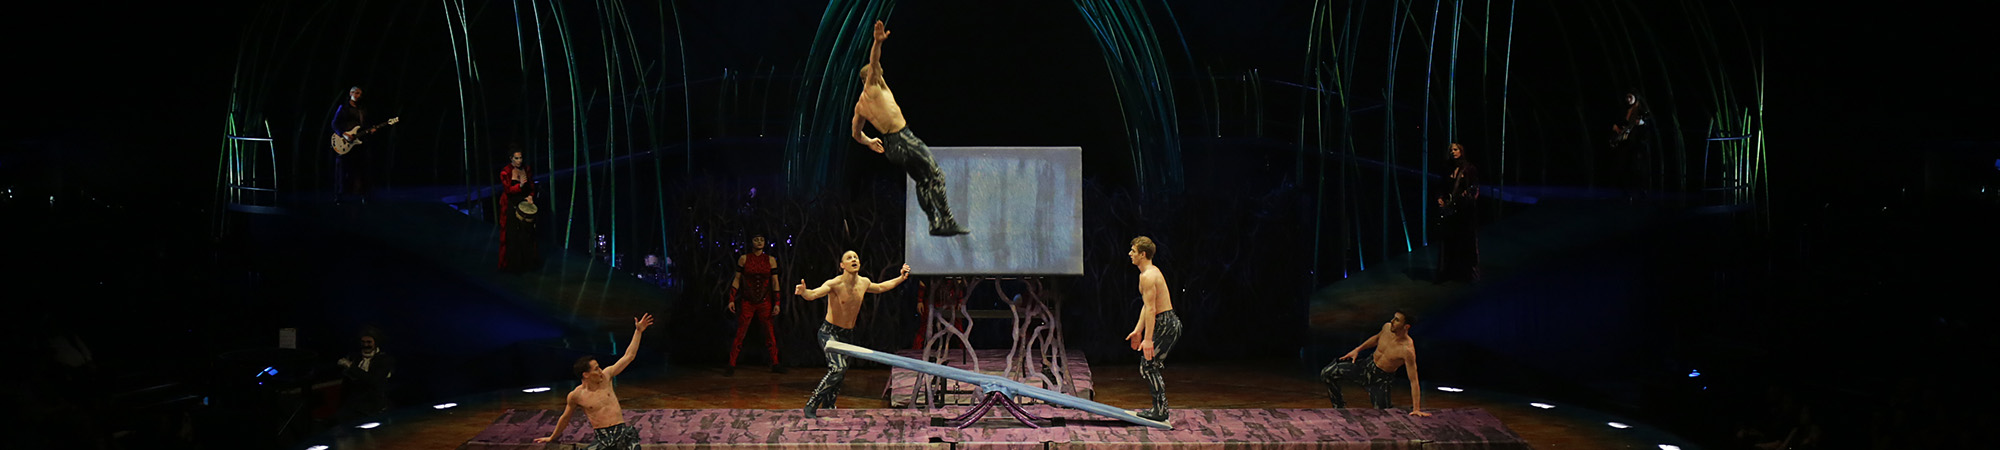 Performers on stage for Cirque Du Soleil at the Royal Albert Hall